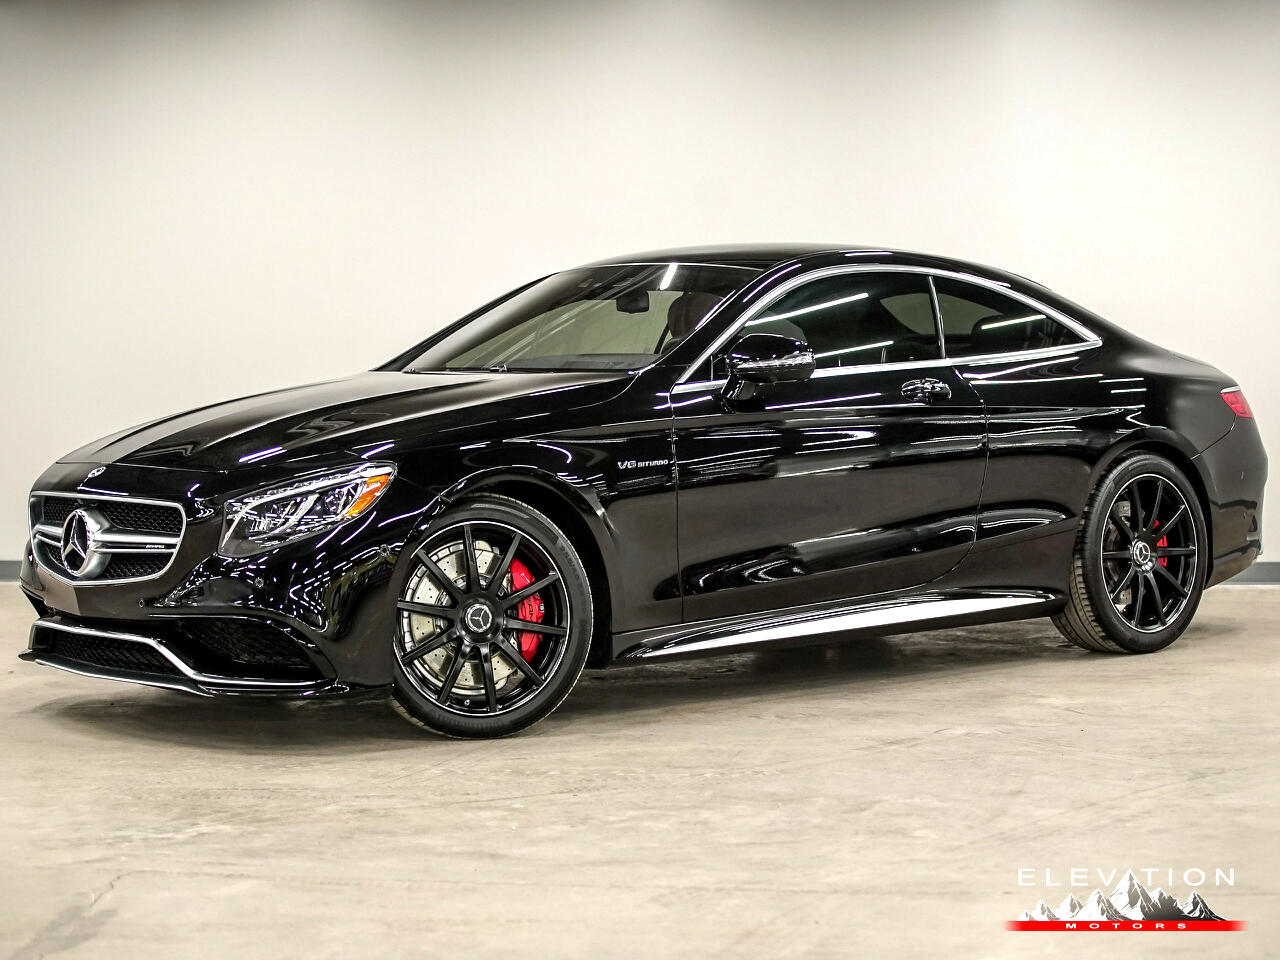 2017 Mercedes-Benz S-Class S63 AMG 4MATIC Coupe